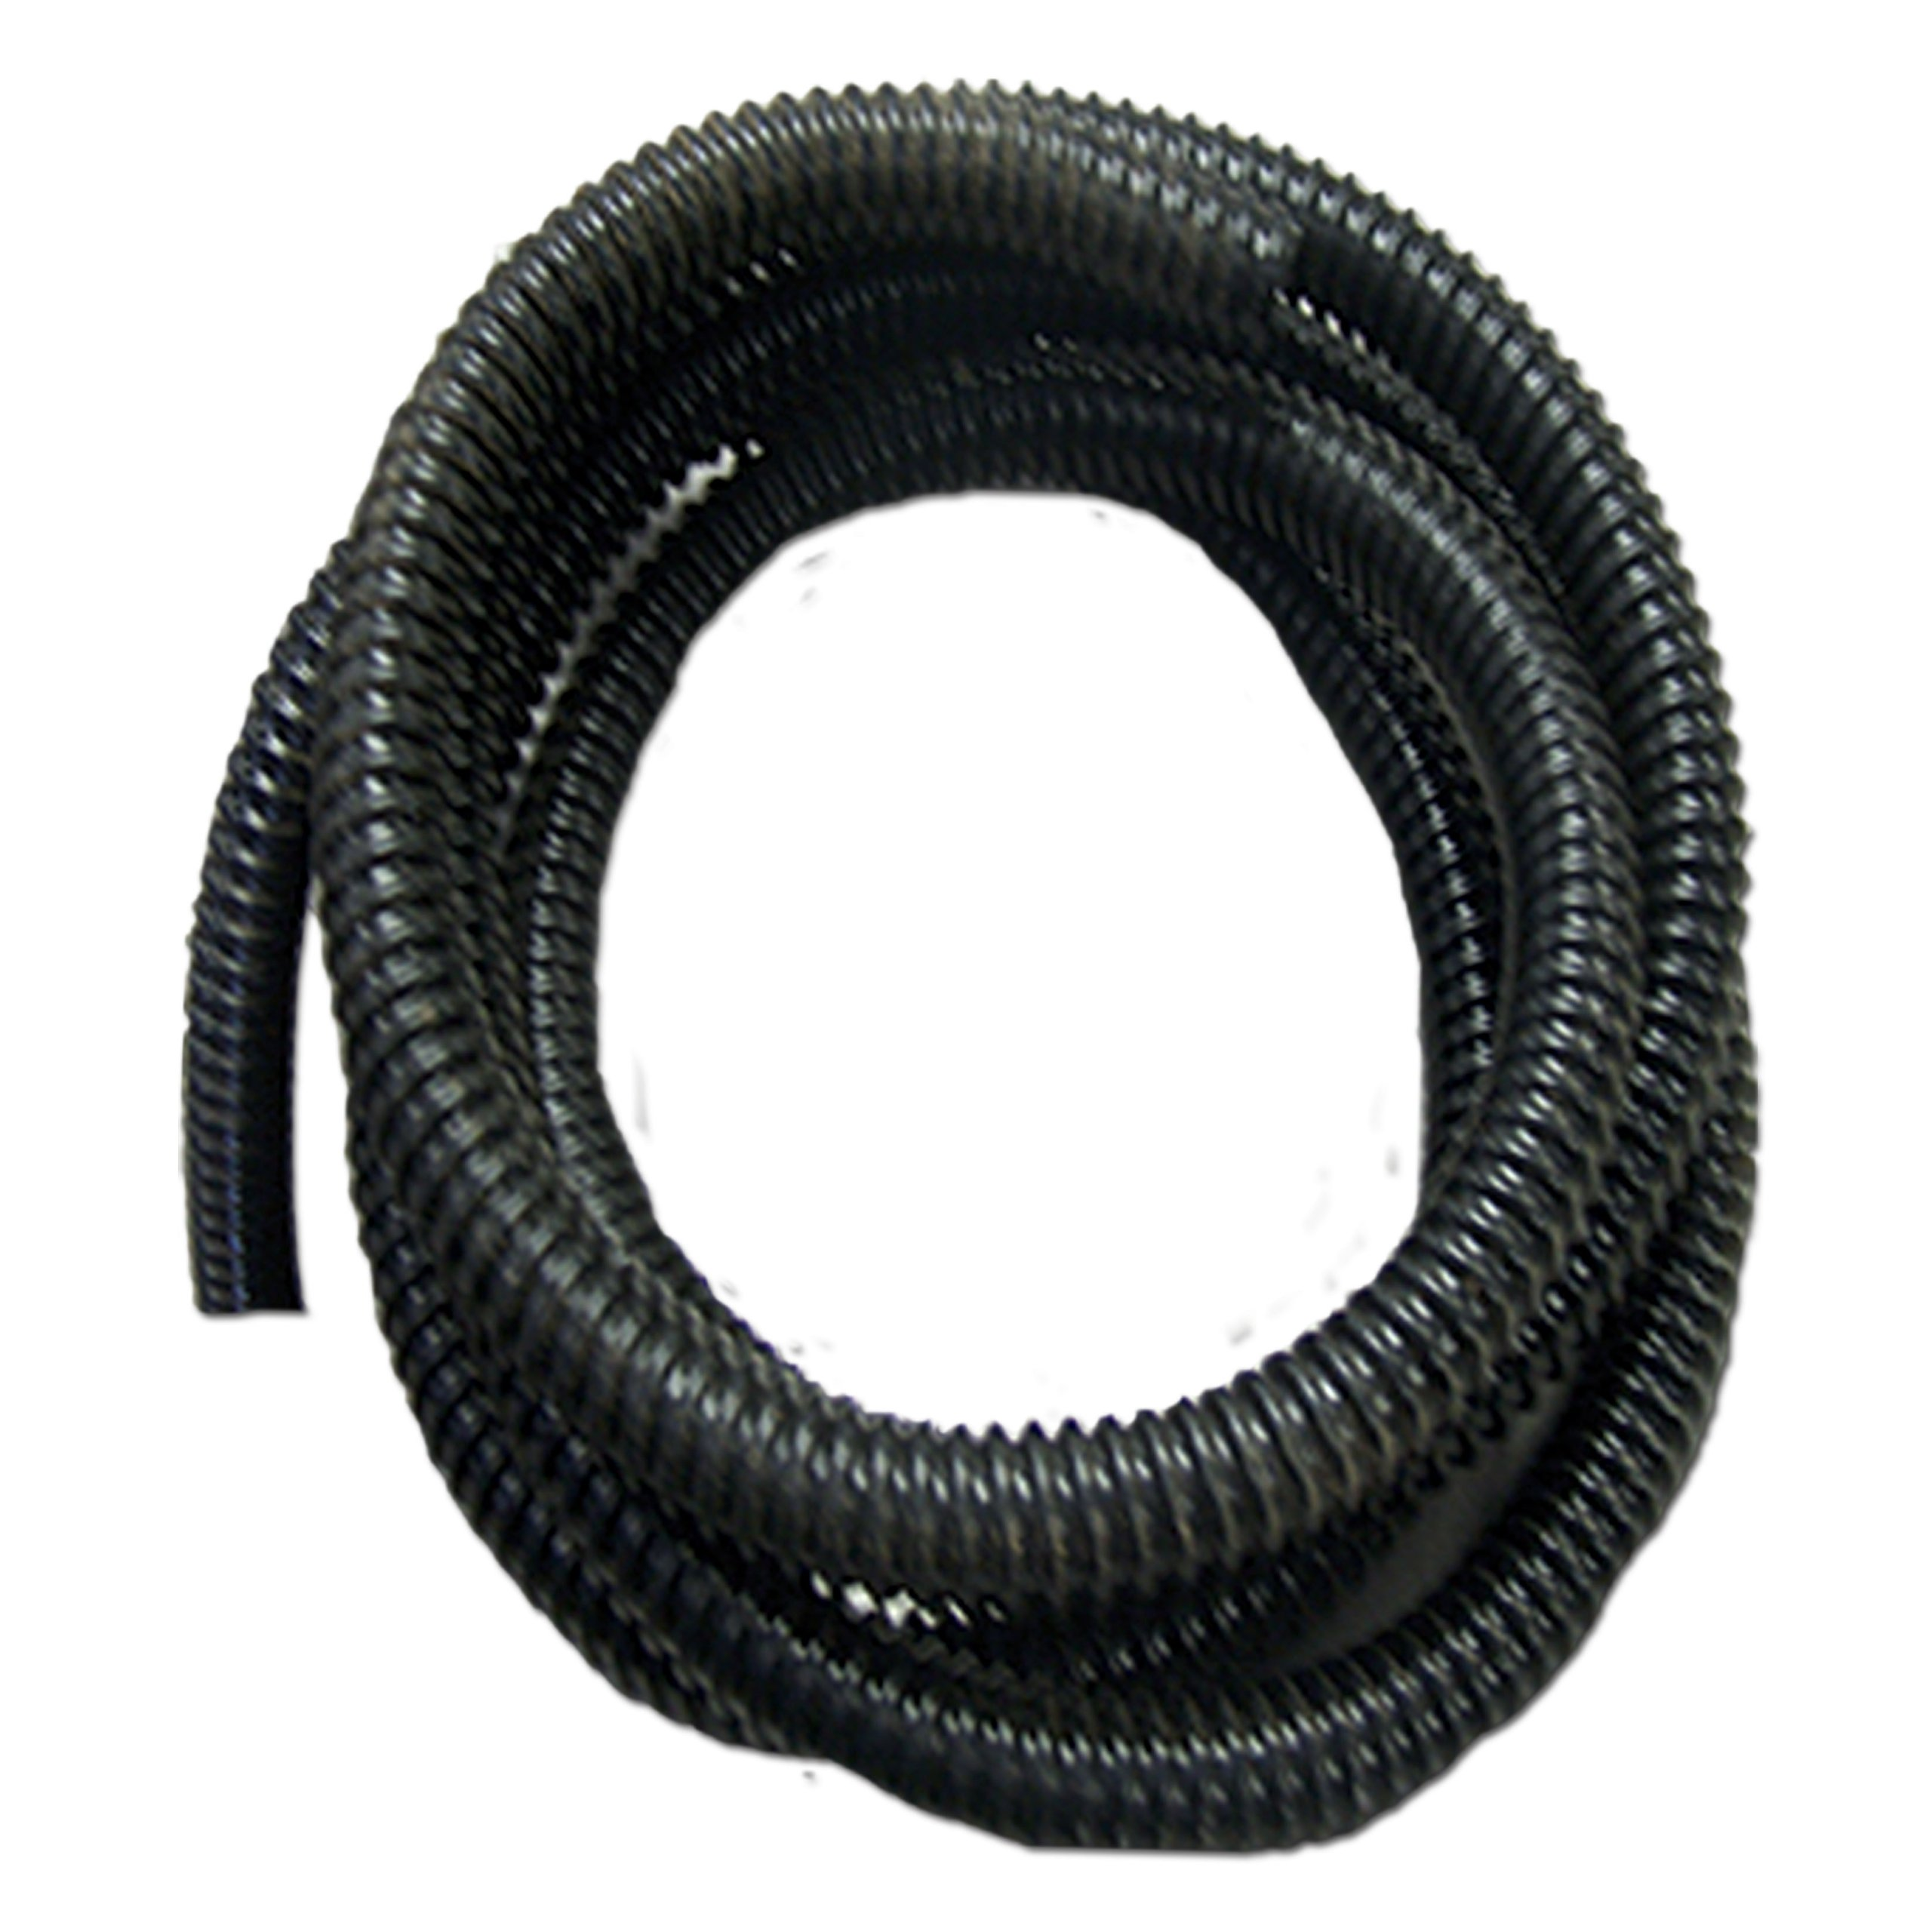 Algreen Heavy Duty Non Kink Tubing for Ponds and Pumps, 1-Inch Diameter by 25-Feet by Algreen